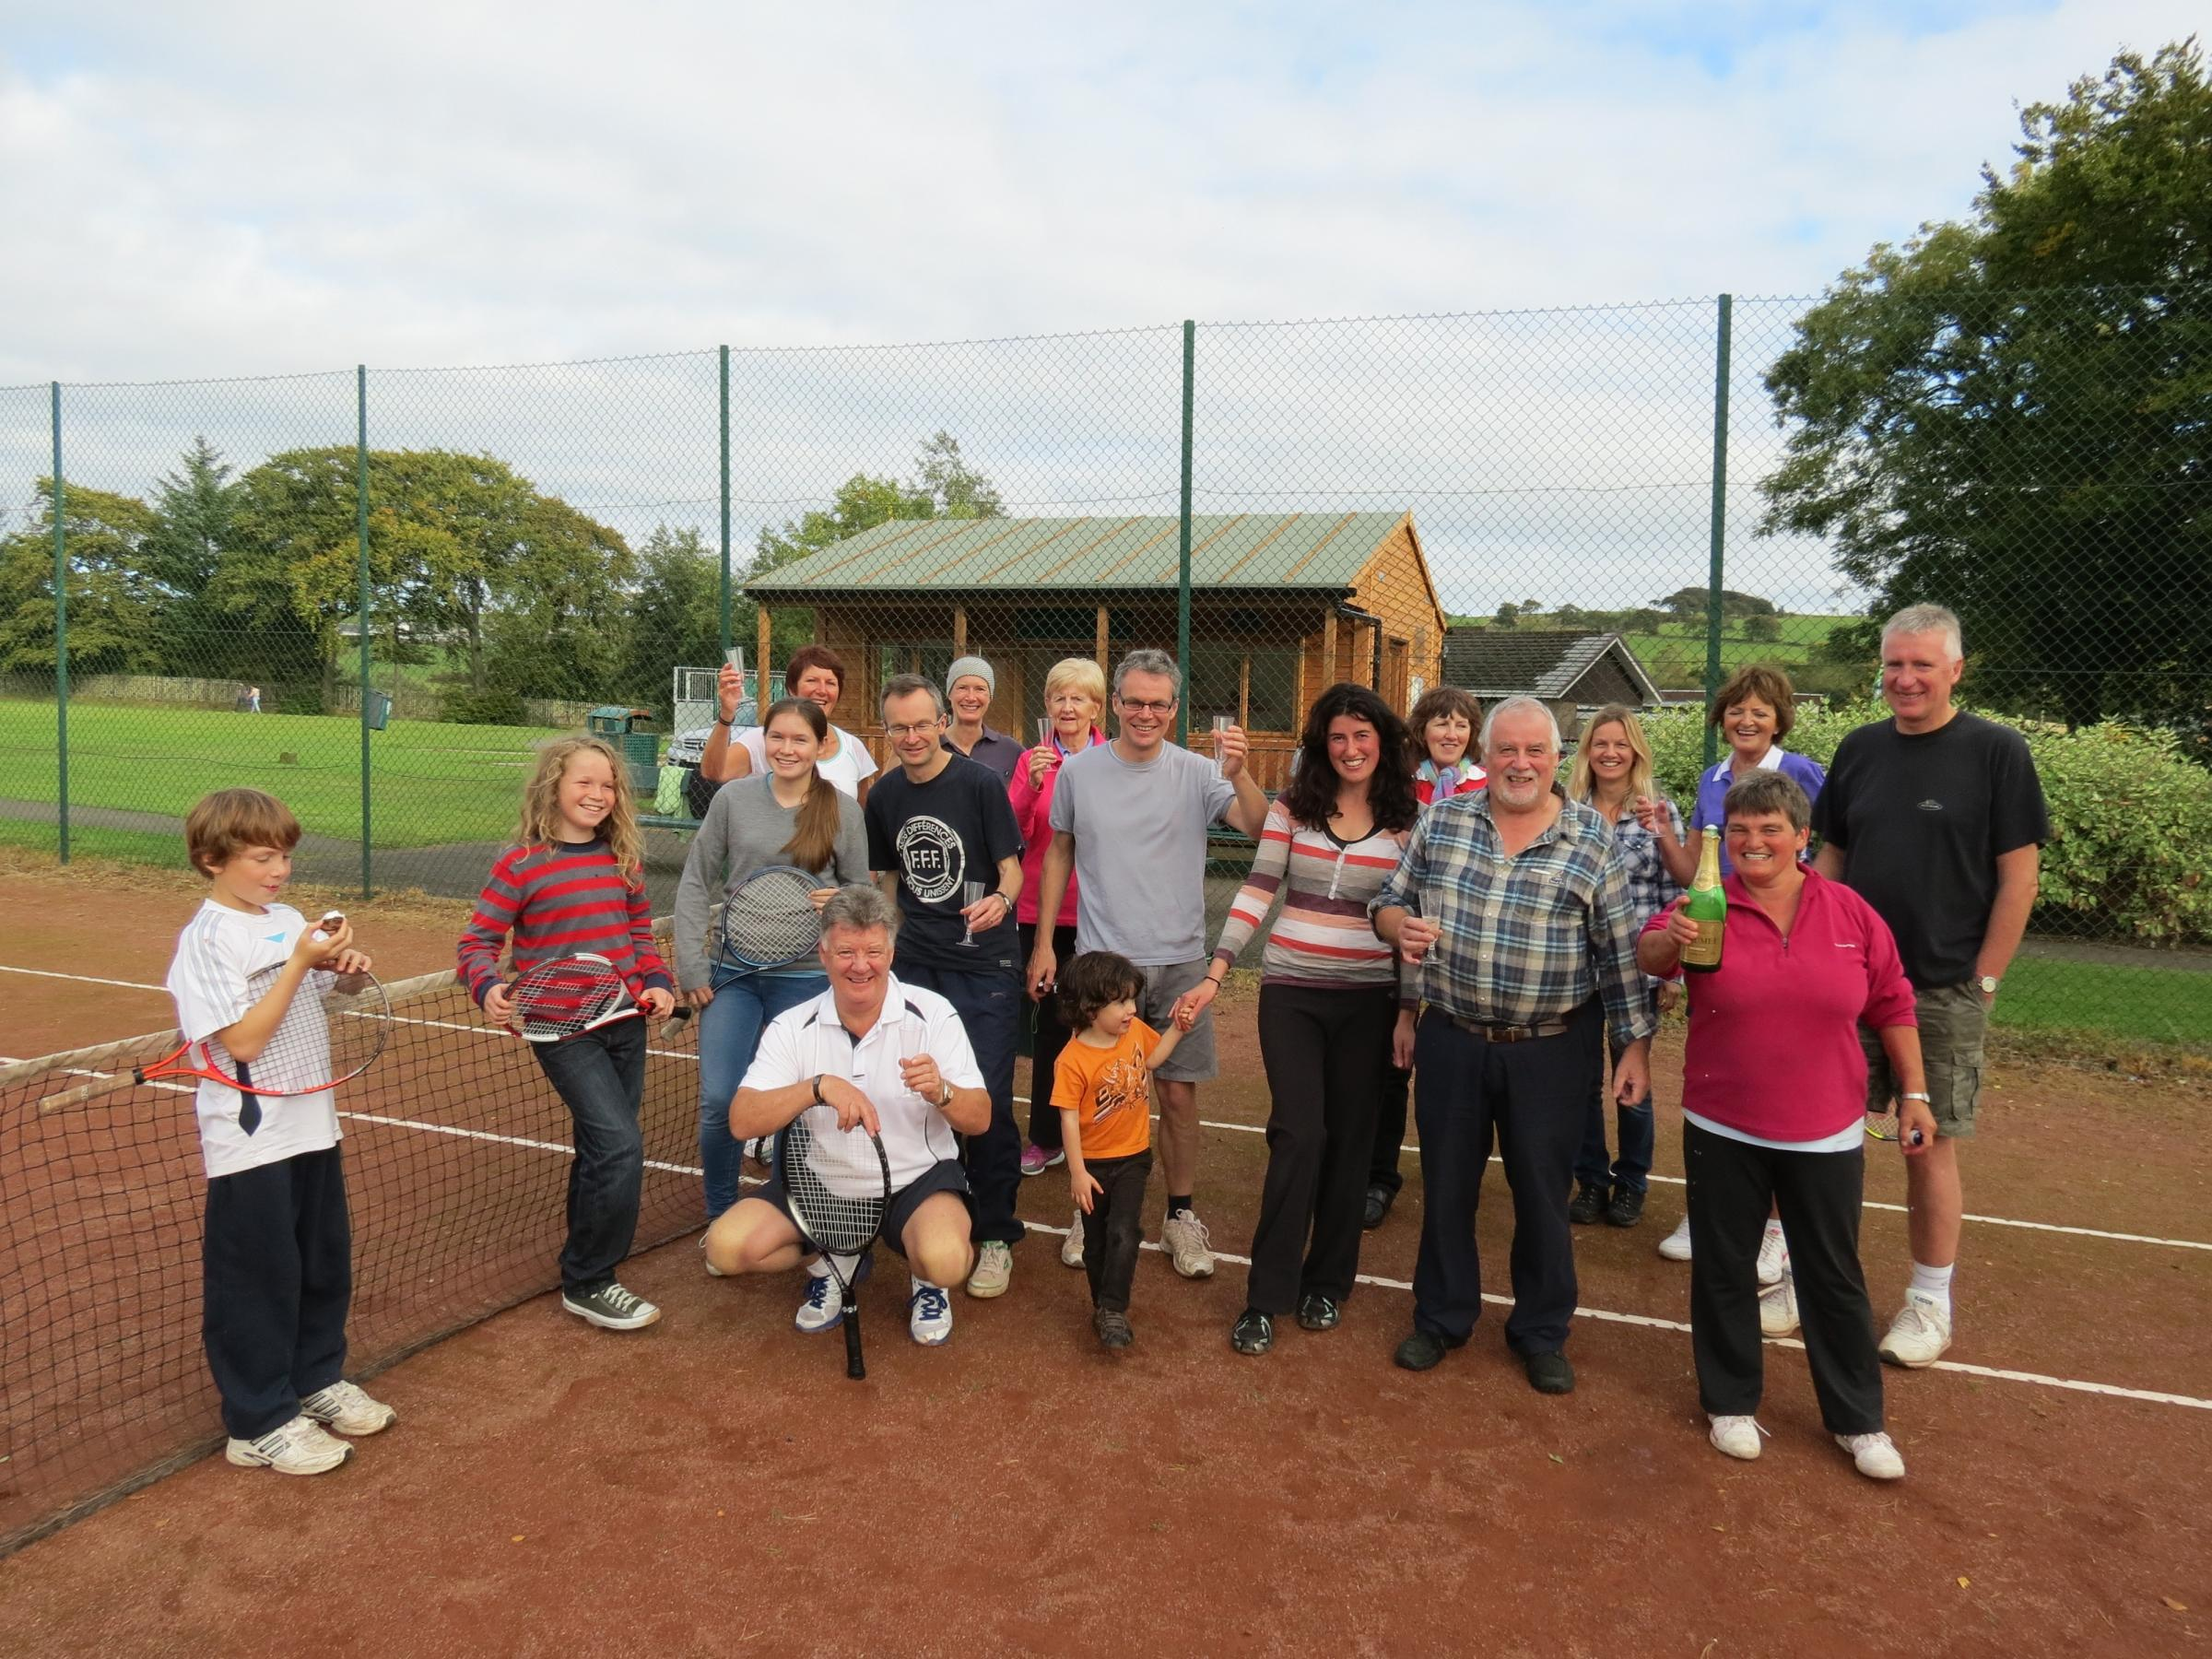 Uplawmoor Tennis Club members bid a fond farewell to their old blues courts, which were replaced with all-weather surfaces three years ago, a move that set the club on the road to league success.